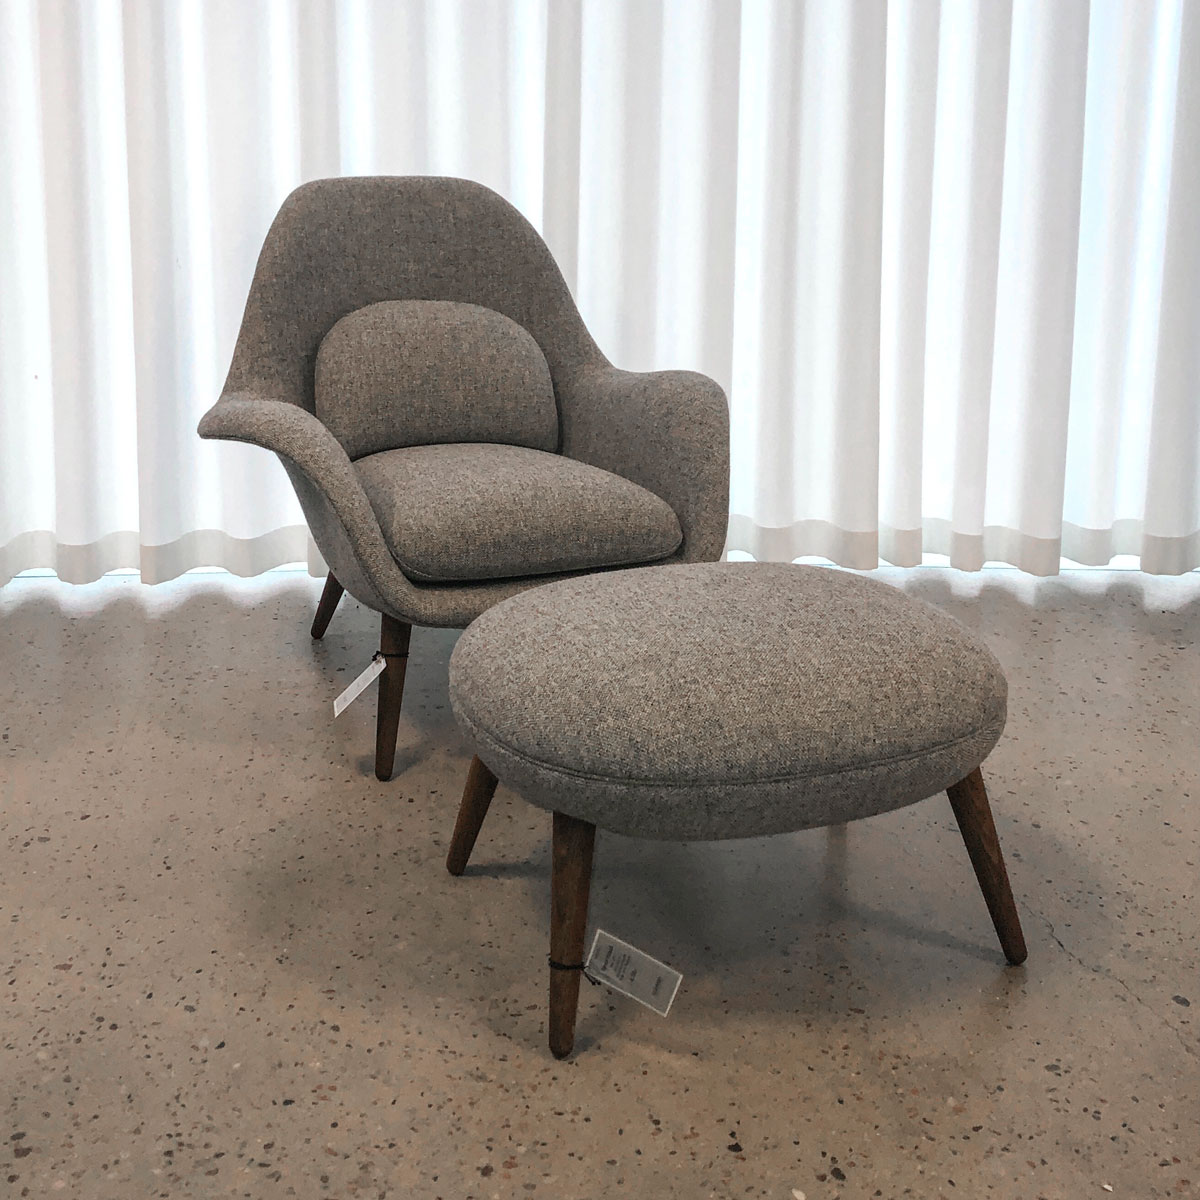 fredericia Swoon Easy Chair demo